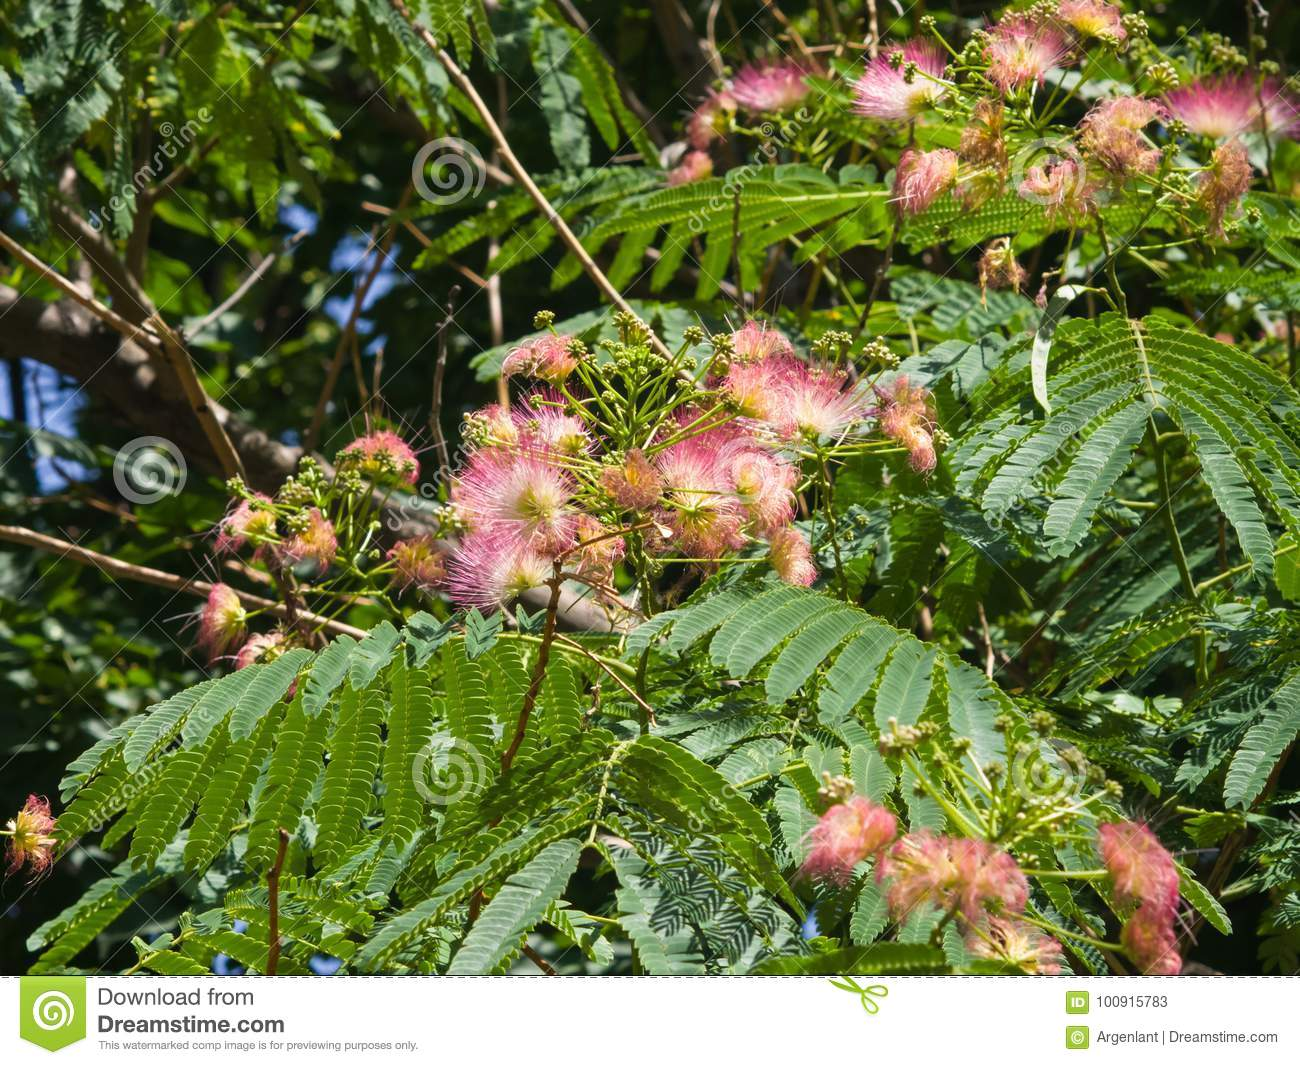 Flowers and buds on blooming persian silk tree albizia julibrissin download flowers and buds on blooming persian silk tree albizia julibrissin with bokeh background mightylinksfo